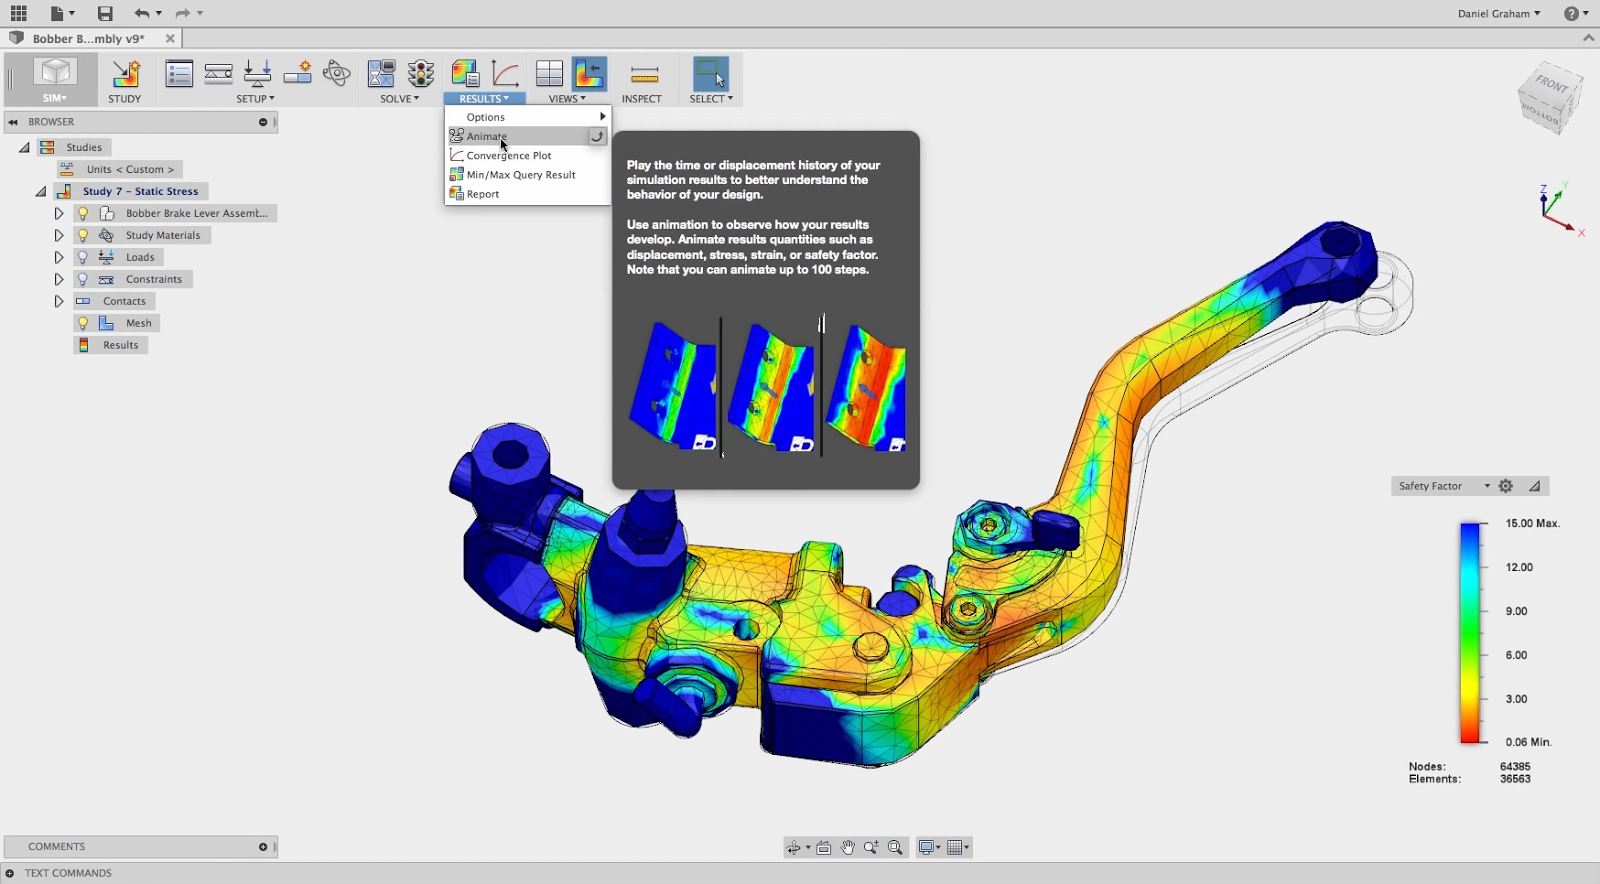 Budweiser Blog: September update of the CAD/CAM/CAE